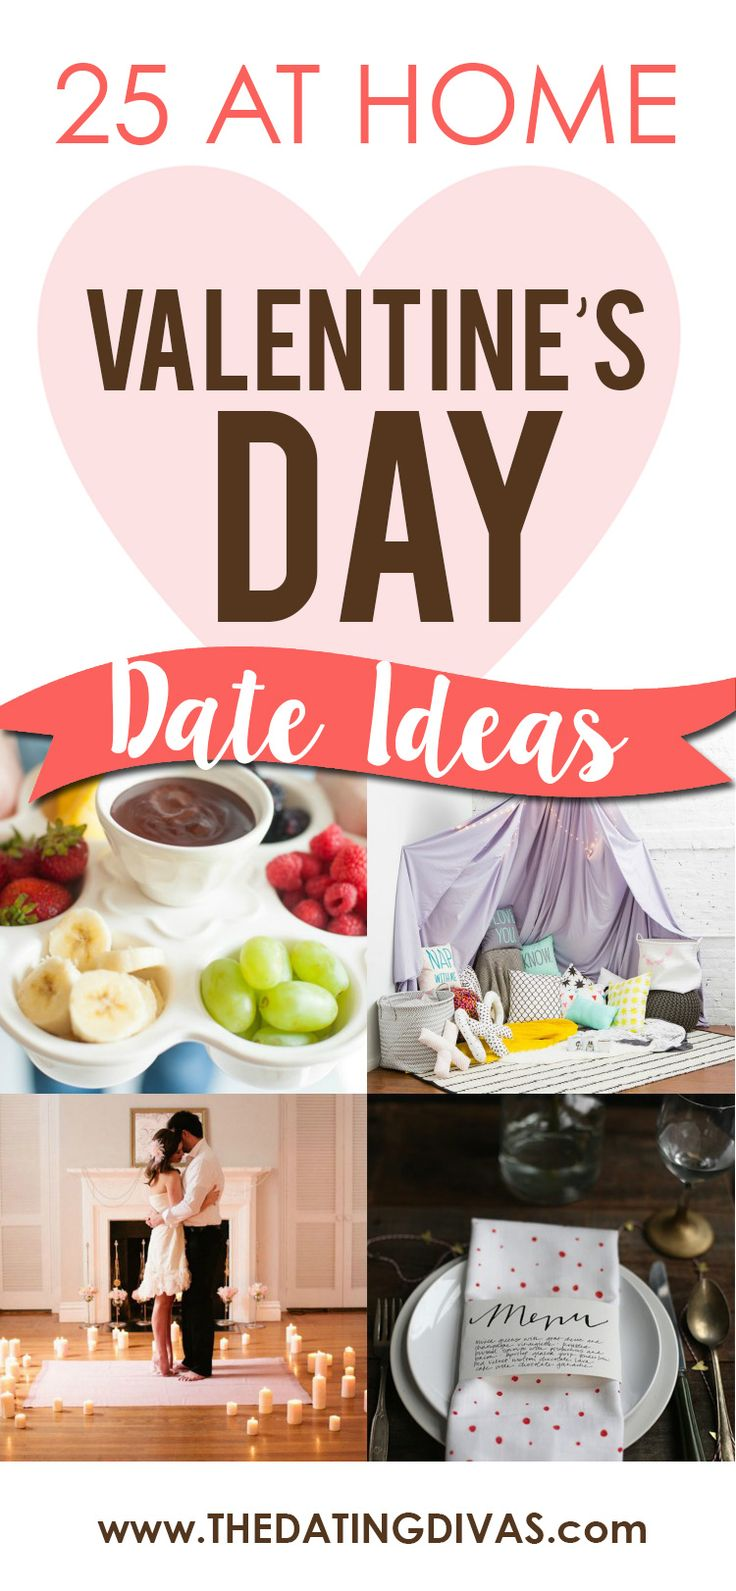 We'll be at home this Valentine's Day! Can't wait to use one of these Valentine's Day Dates this year! www.TheDatingDivas.com